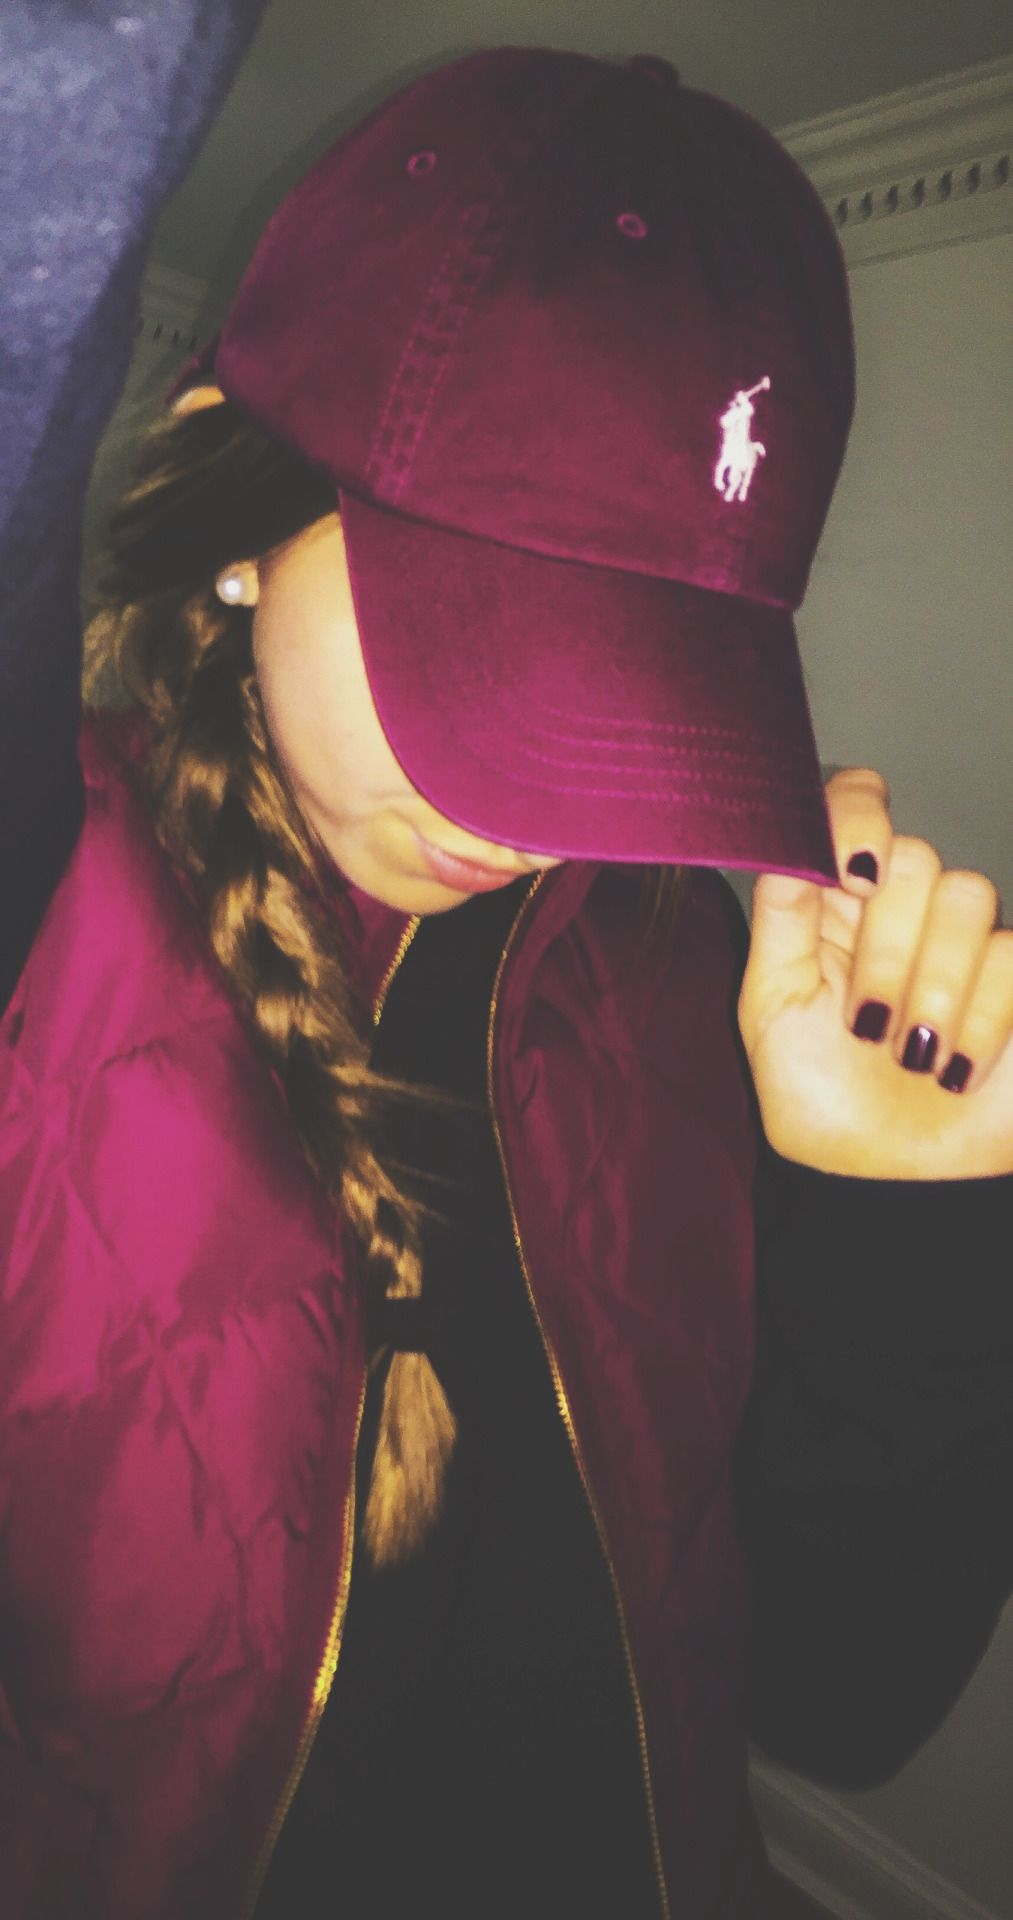 Pin by Mimi M on Ralph Lauren   Pinterest   Hats, Outfits and Baseball hats 3f80941a0e9